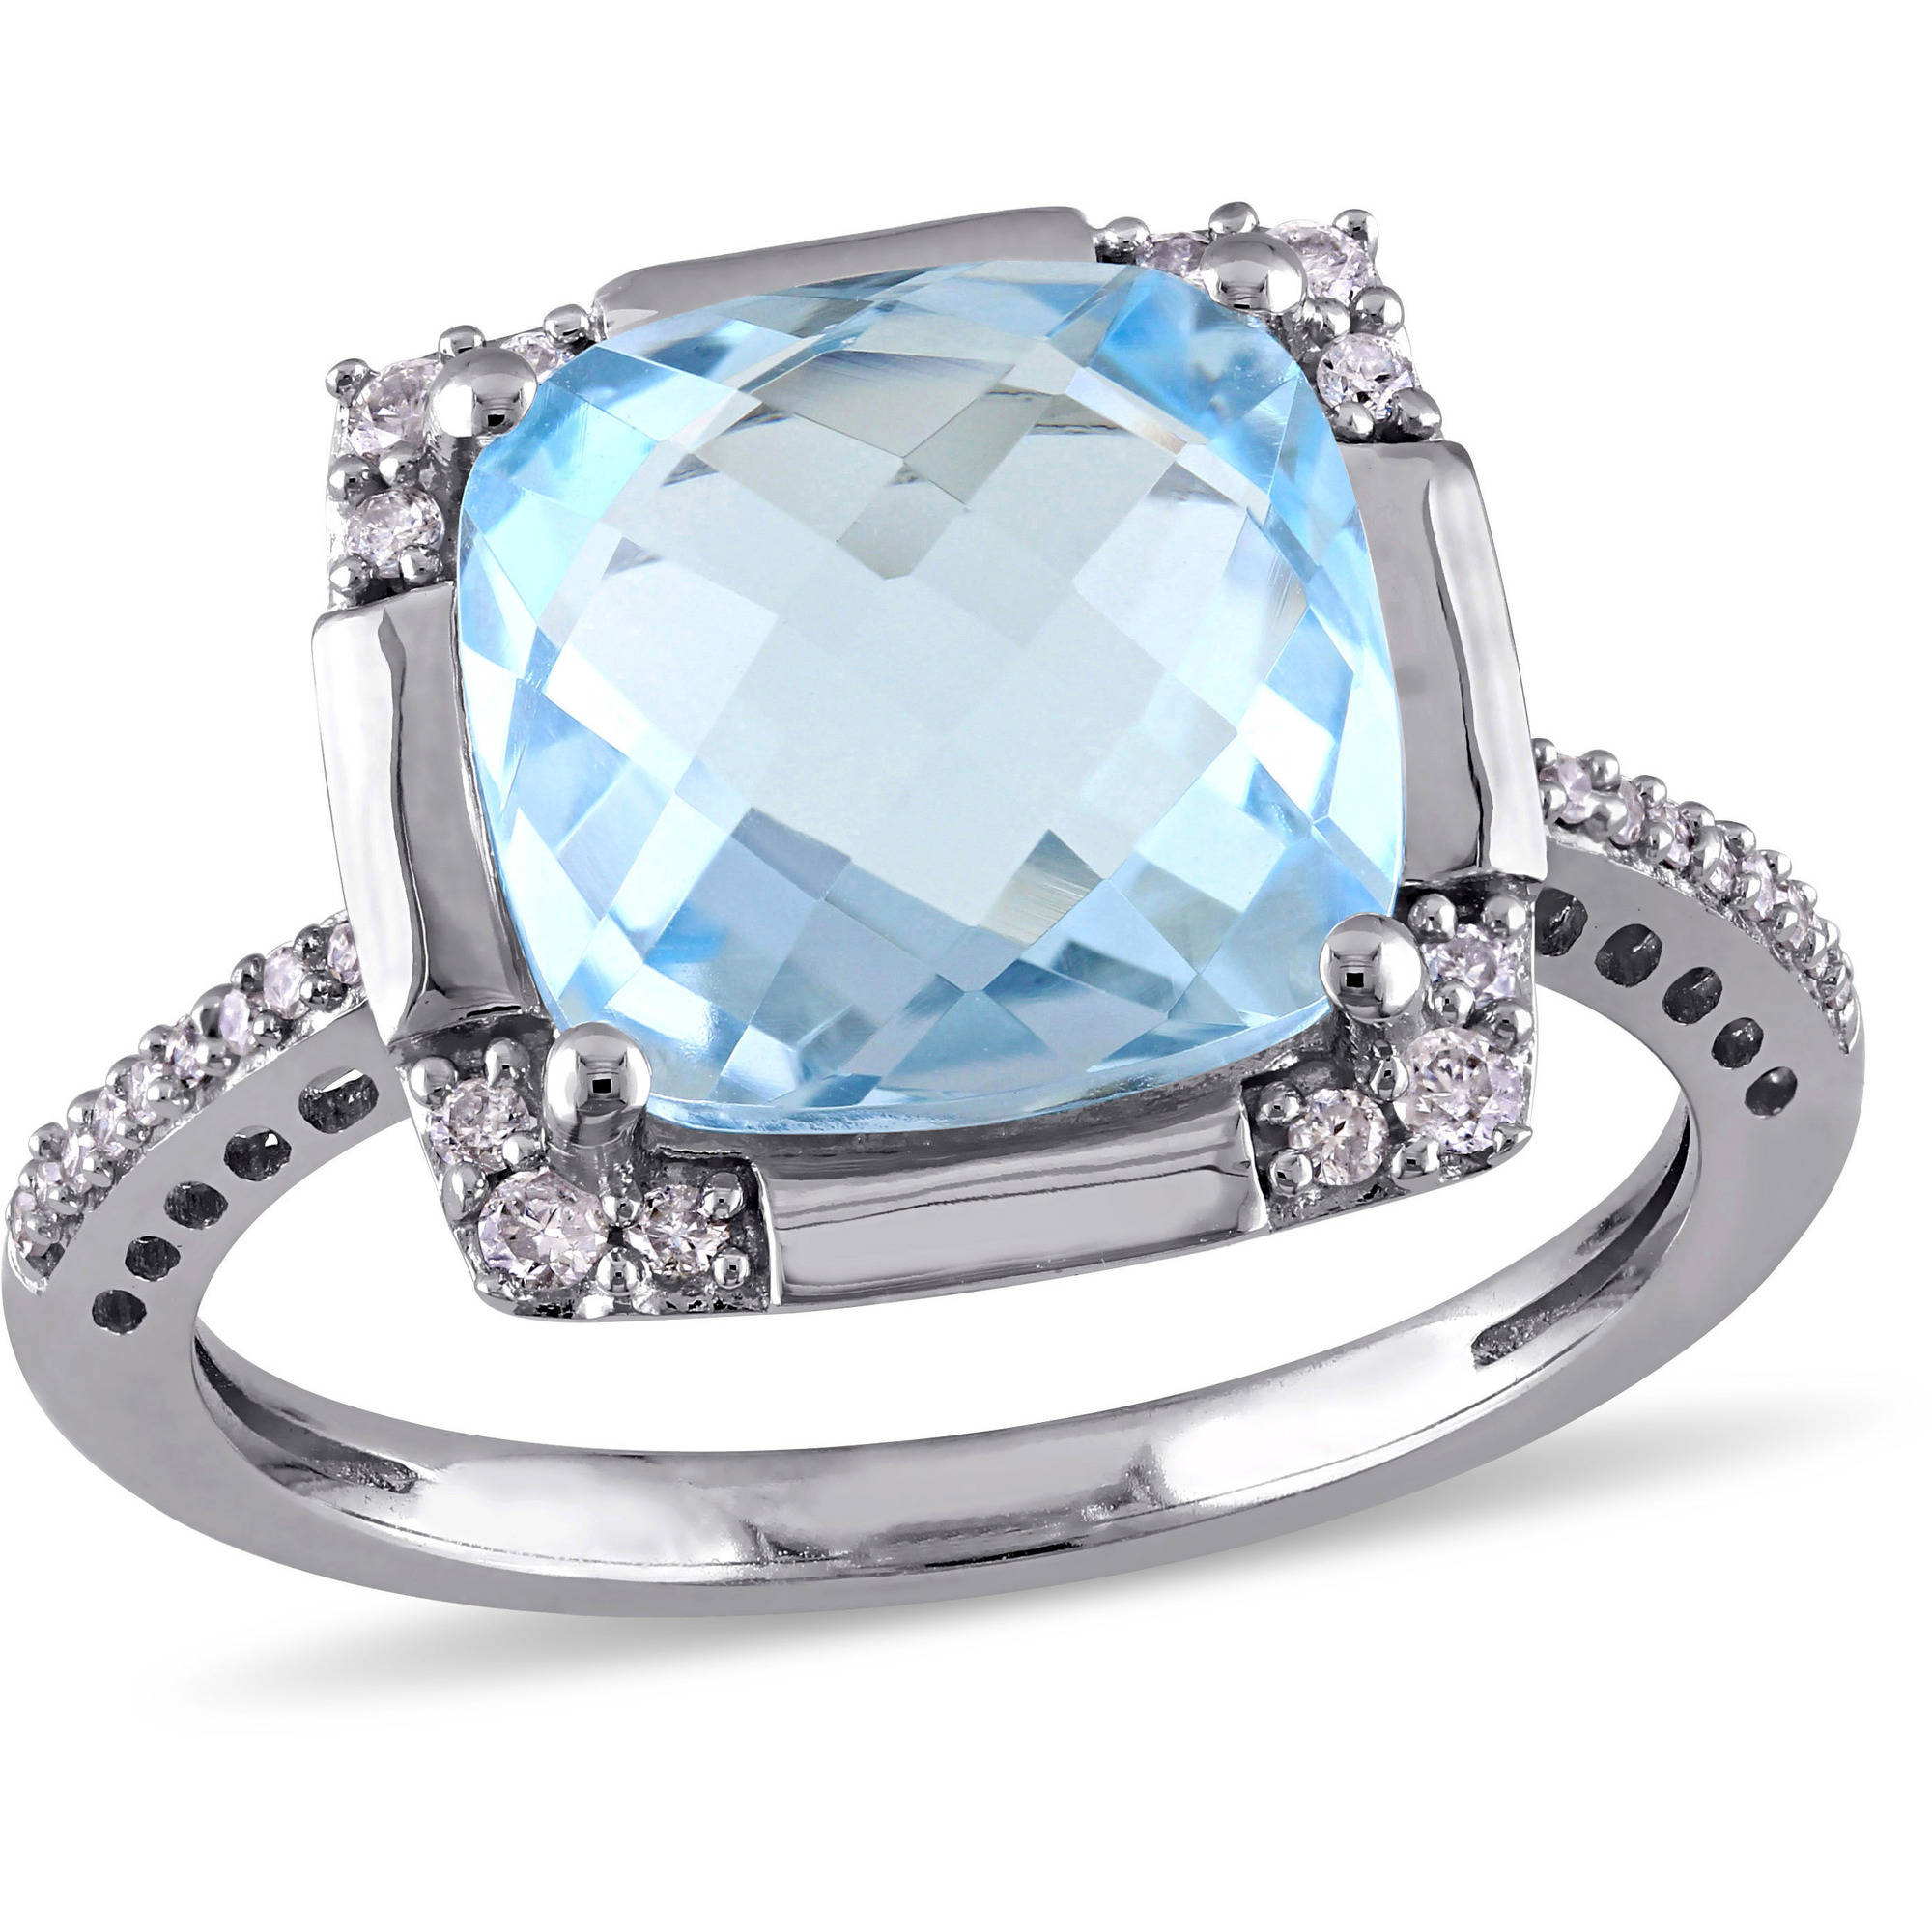 Tangelo 6 Carat T.G.W. Cushion-Cut Sky Blue Topaz and 1 6 Carat T.W. Diamond 10kt White Gold Cocktail Ring by Tangelo